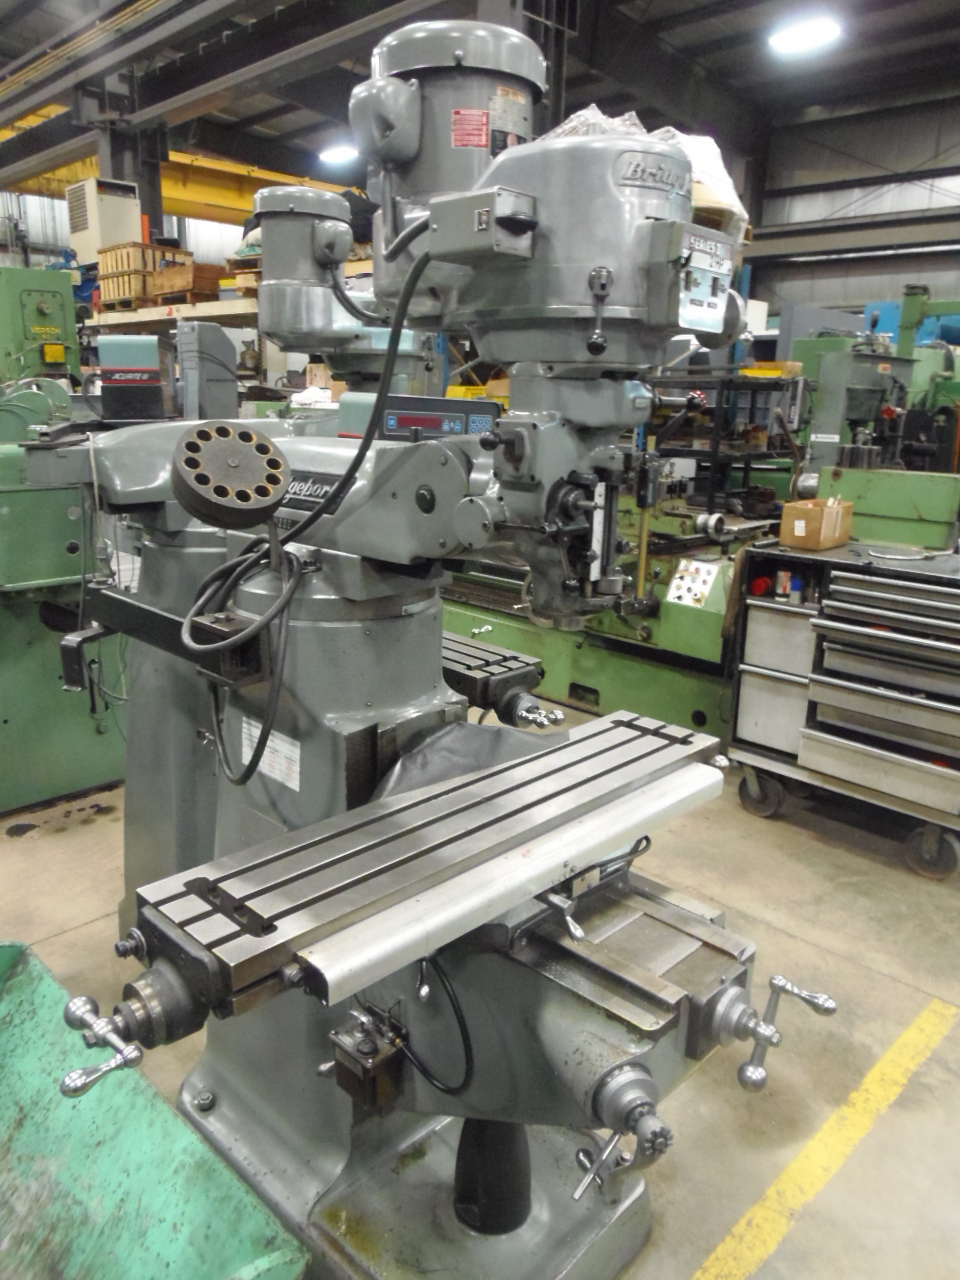 SERIES I BRIDGEPORT, VARY SPEED, 2 AXIS DRO, 9 X 42 TABLE, 1984